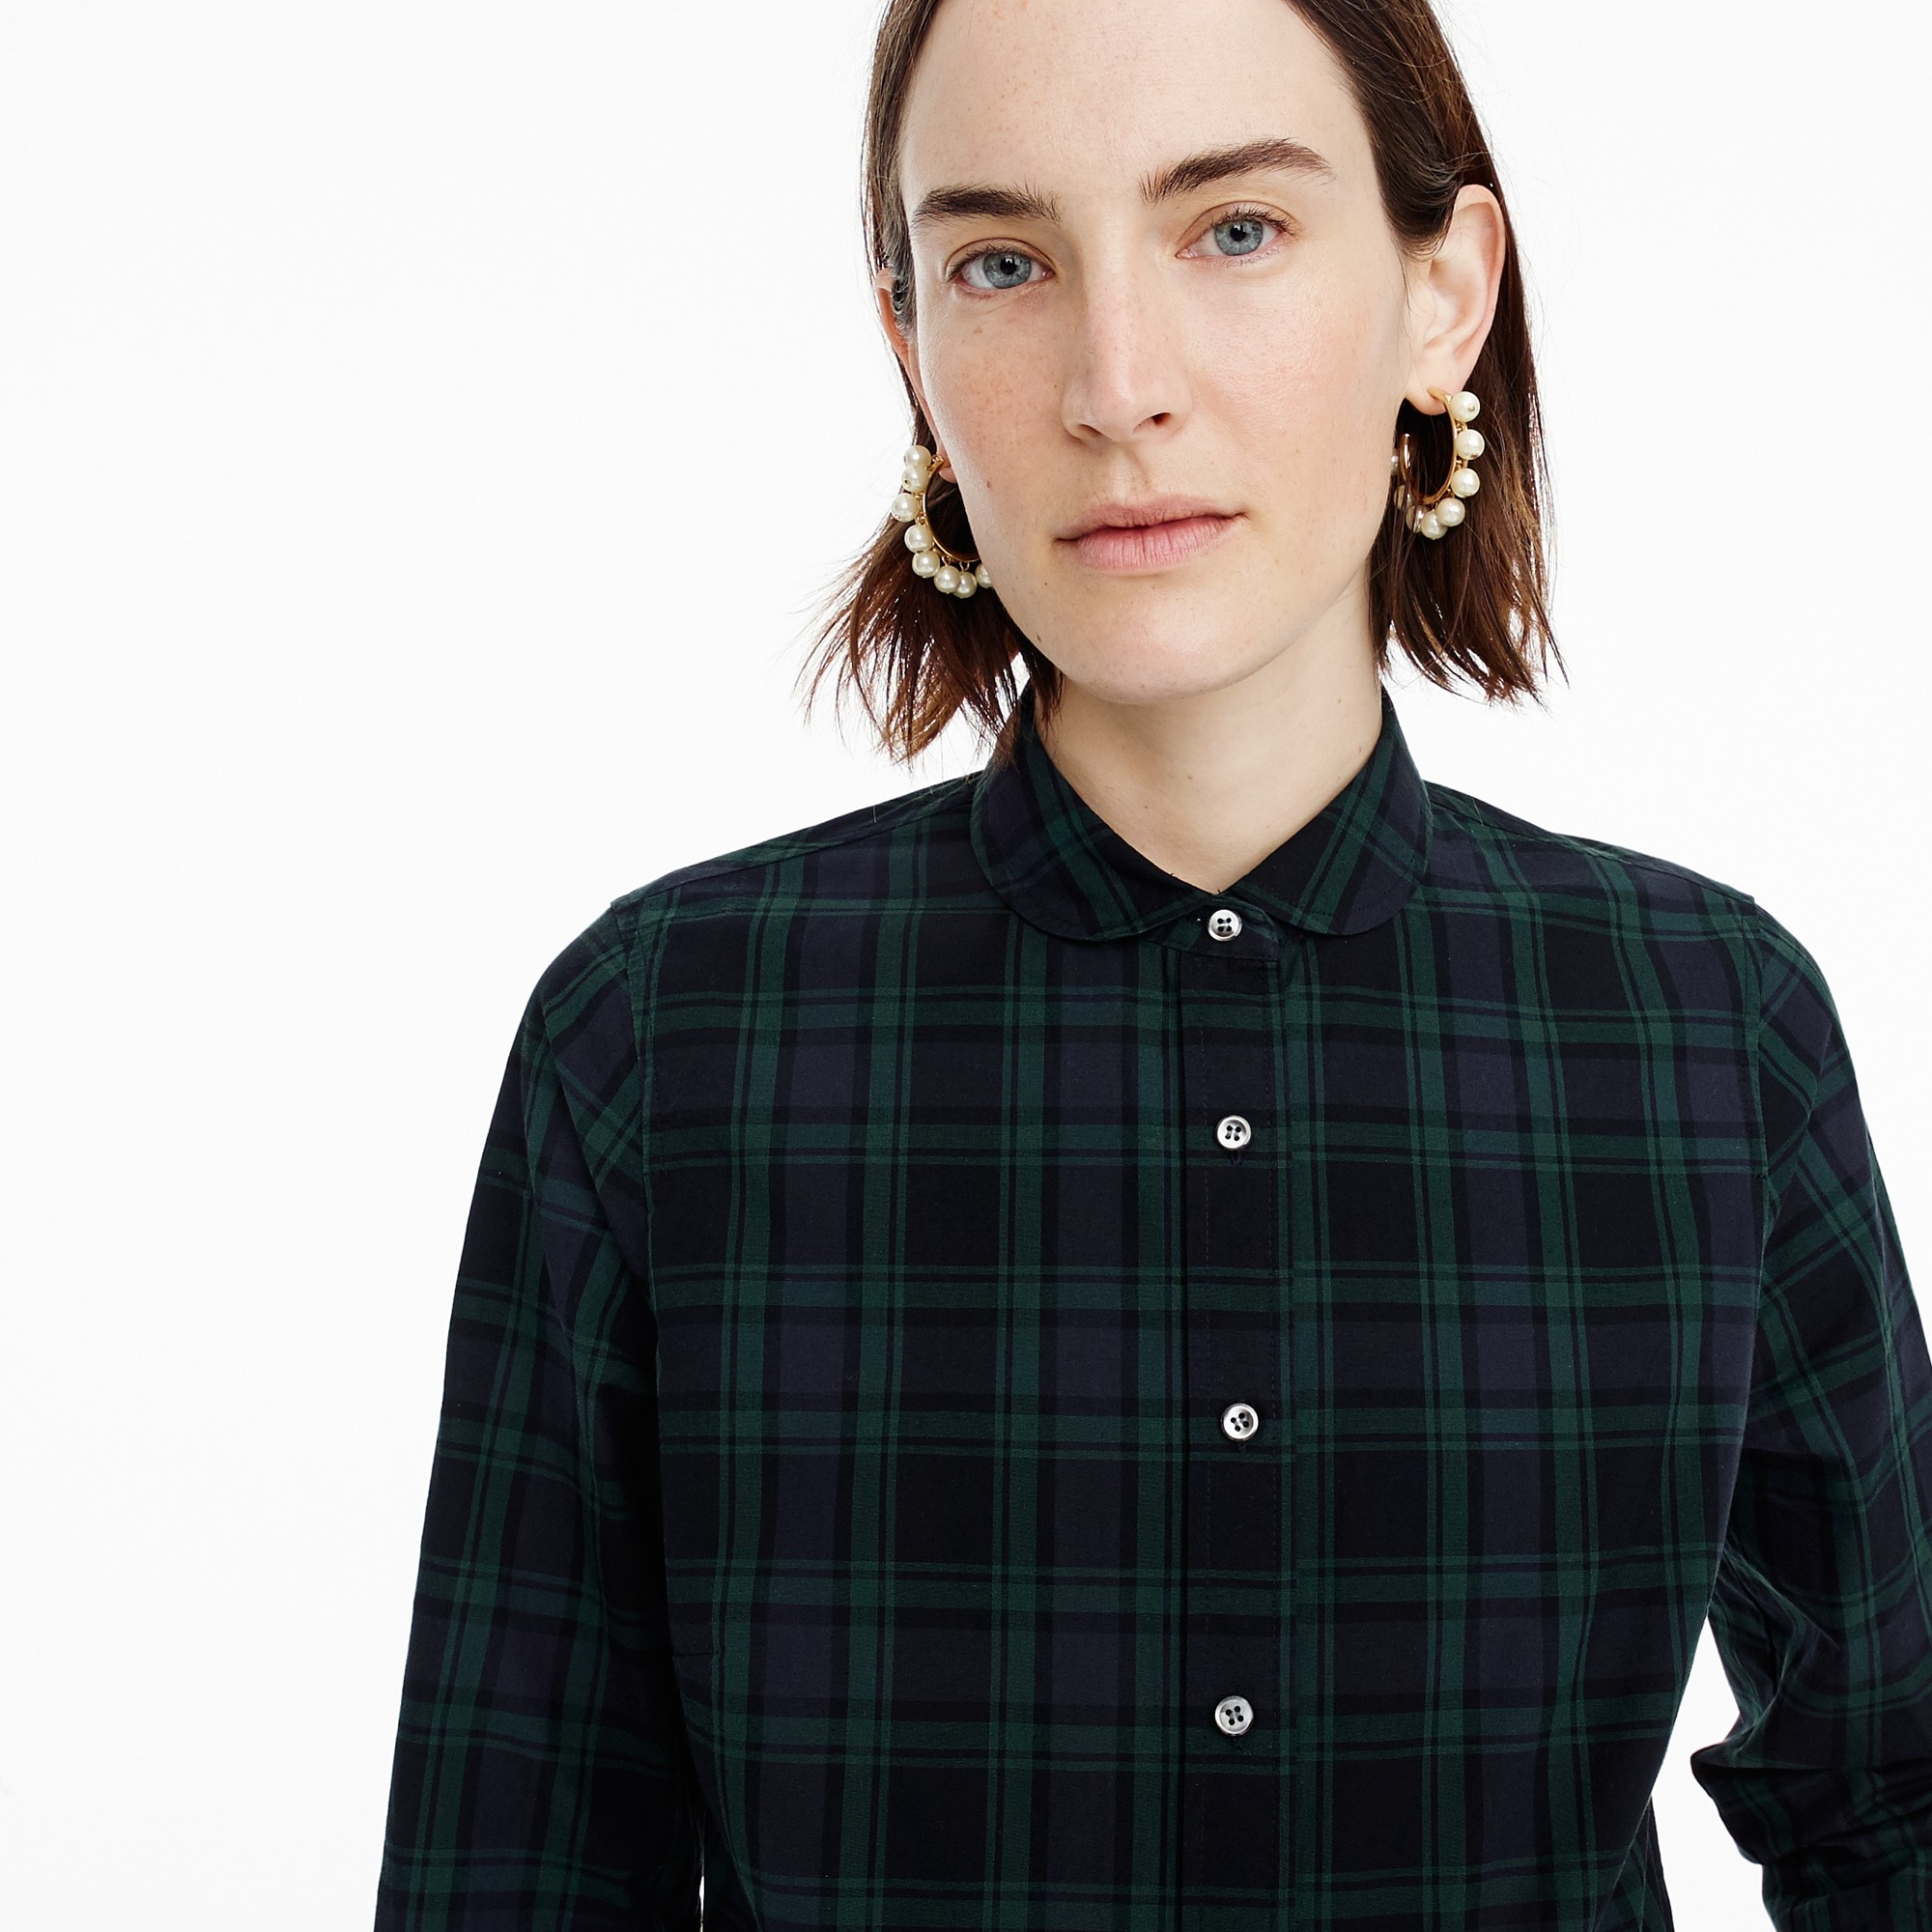 Image 3 for Petite club-collar perfect shirt in Black Watch plaid